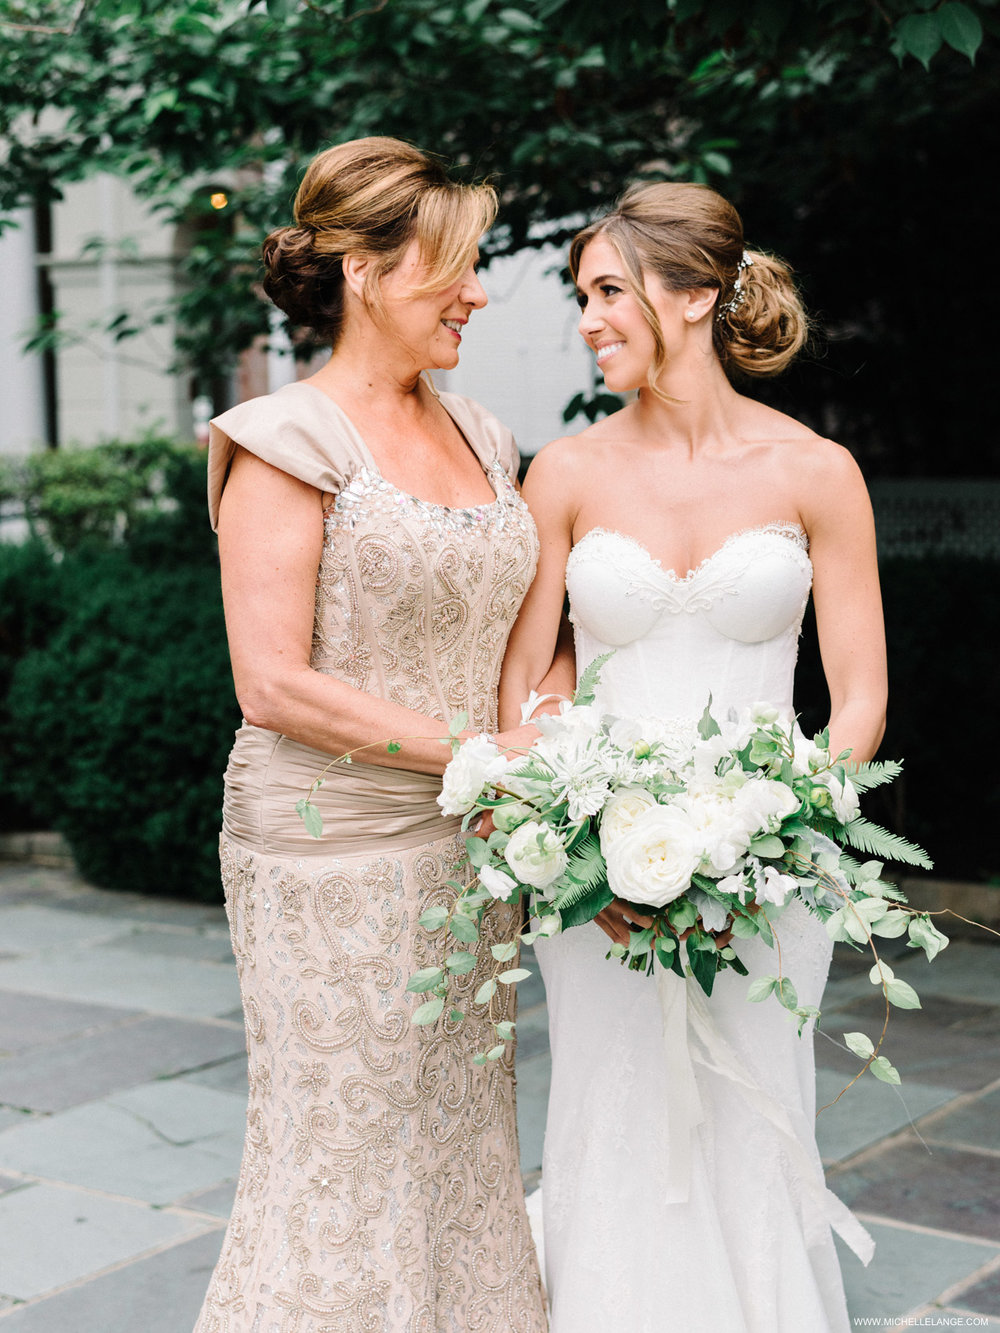 NY Wedding Photographer with Mom and Bride